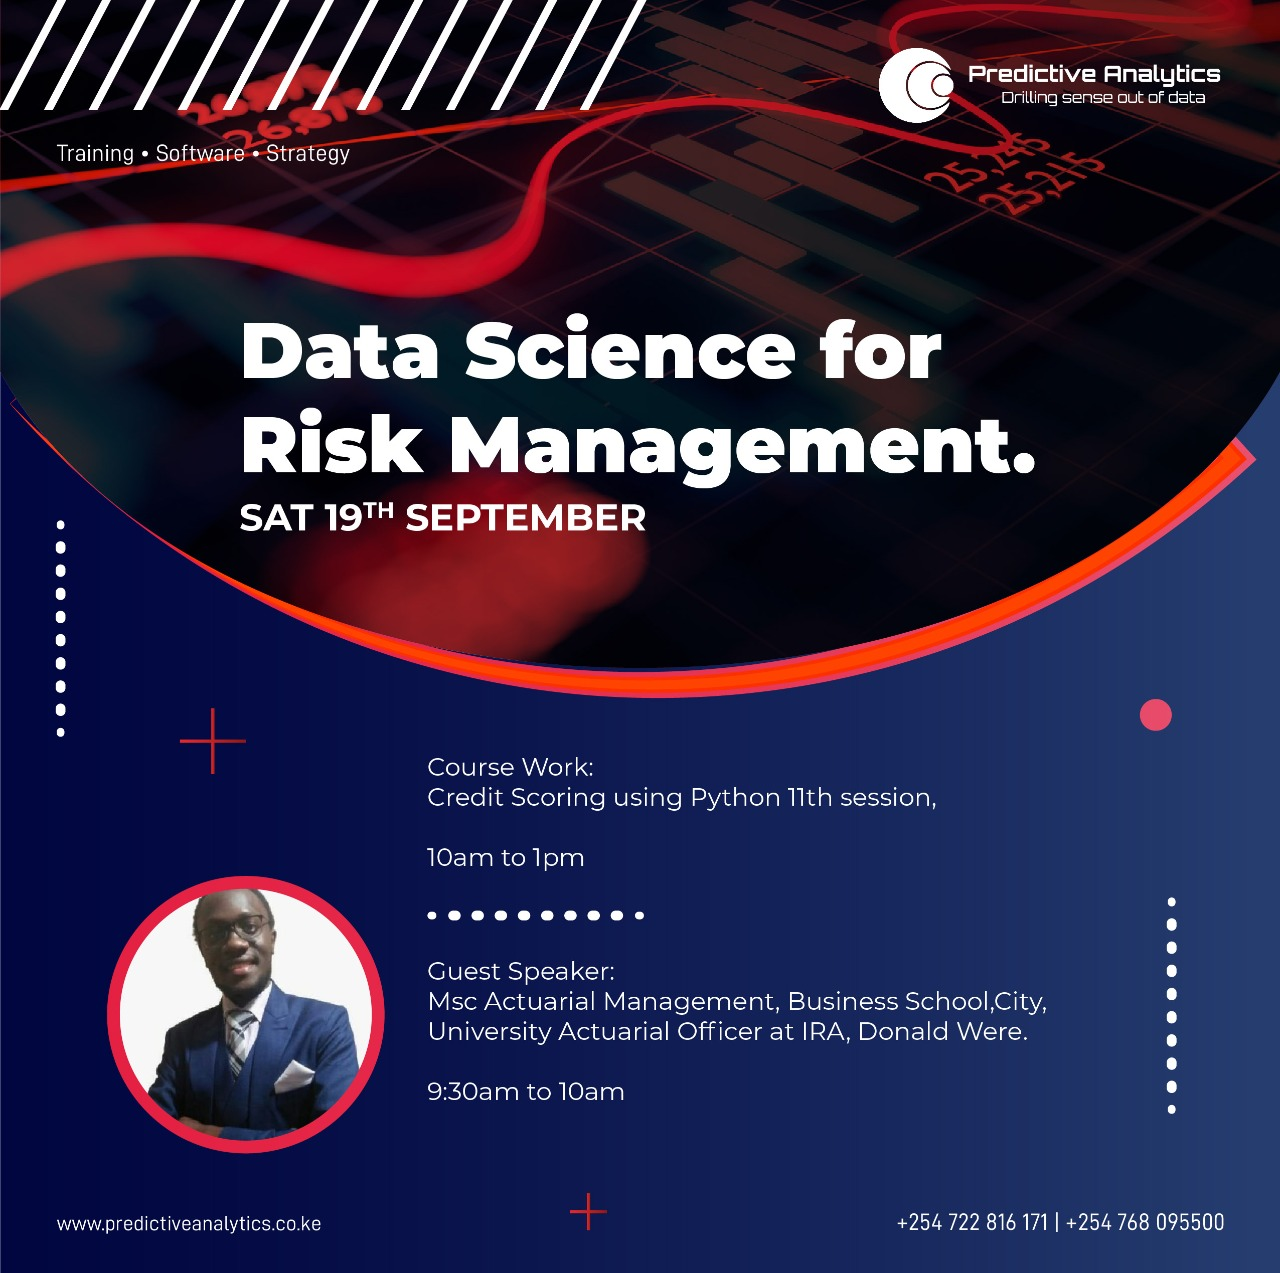 Data Science for Risk Management